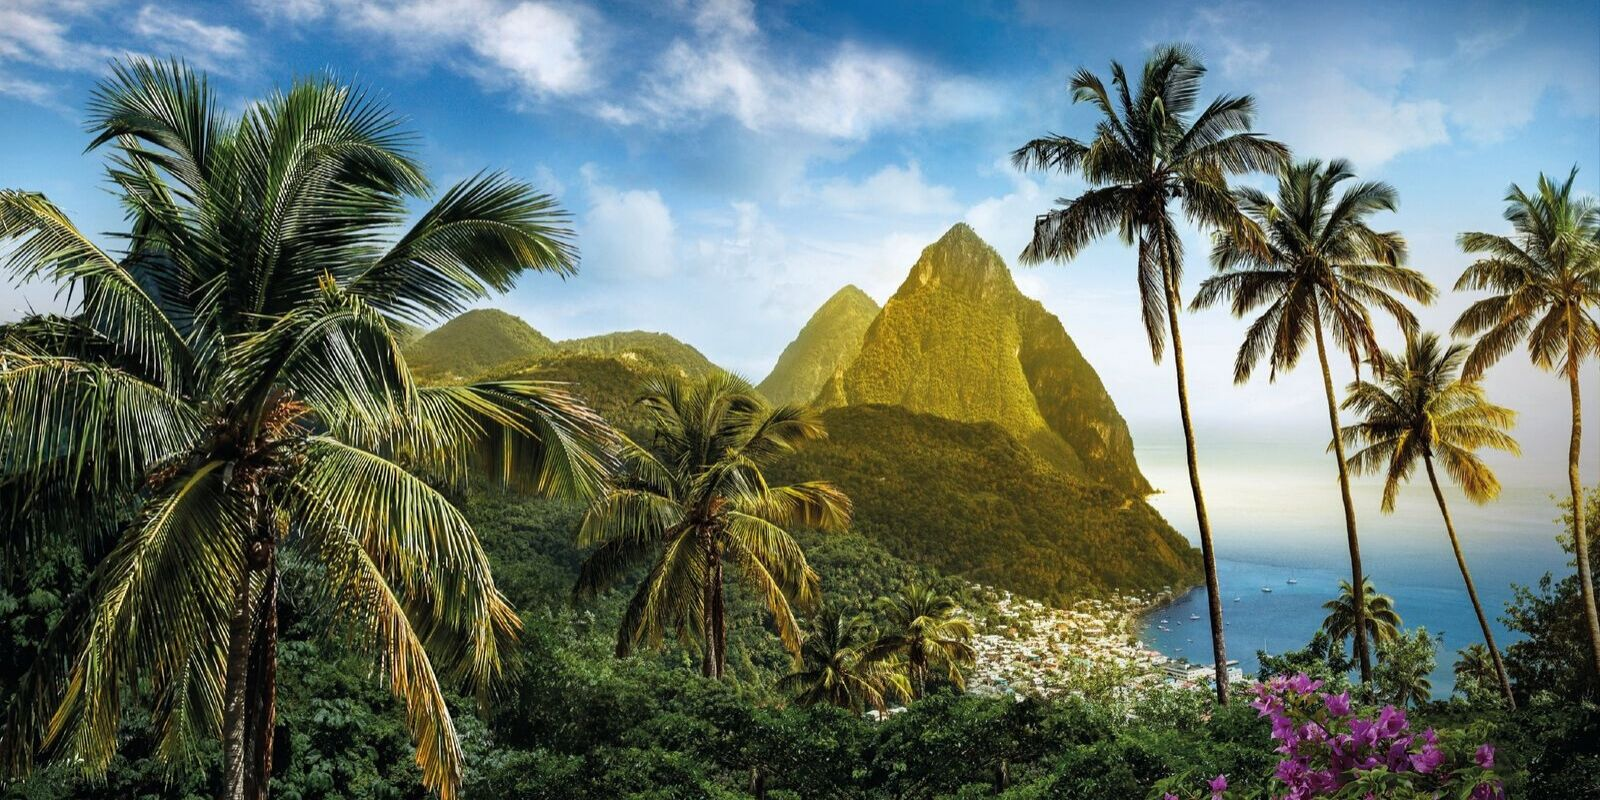 Travel blog: Top 11 Tricks to Level Up Saint Lucia